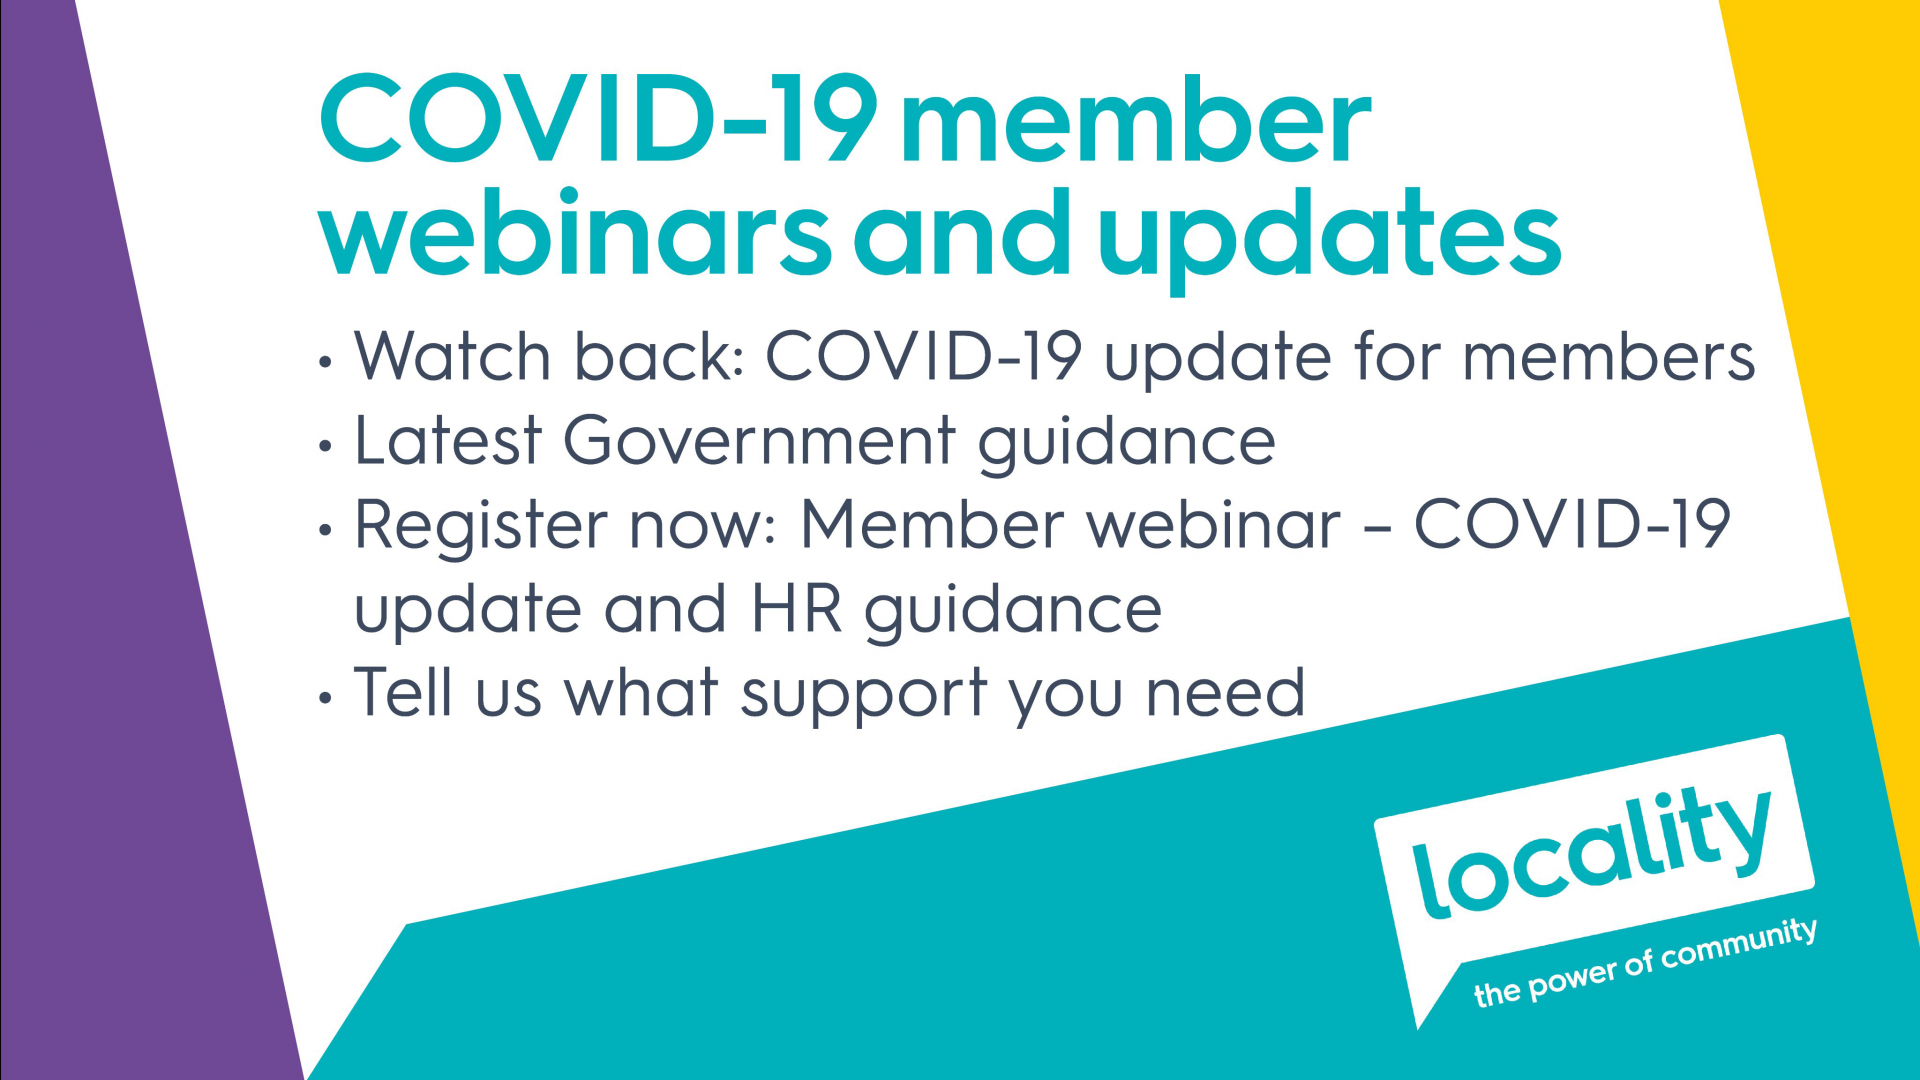 COVID-19 member webinars and updates. Watch our latest webinar on the latest government advice, register for our member only webinar on HR advice, and tell us what support you need.